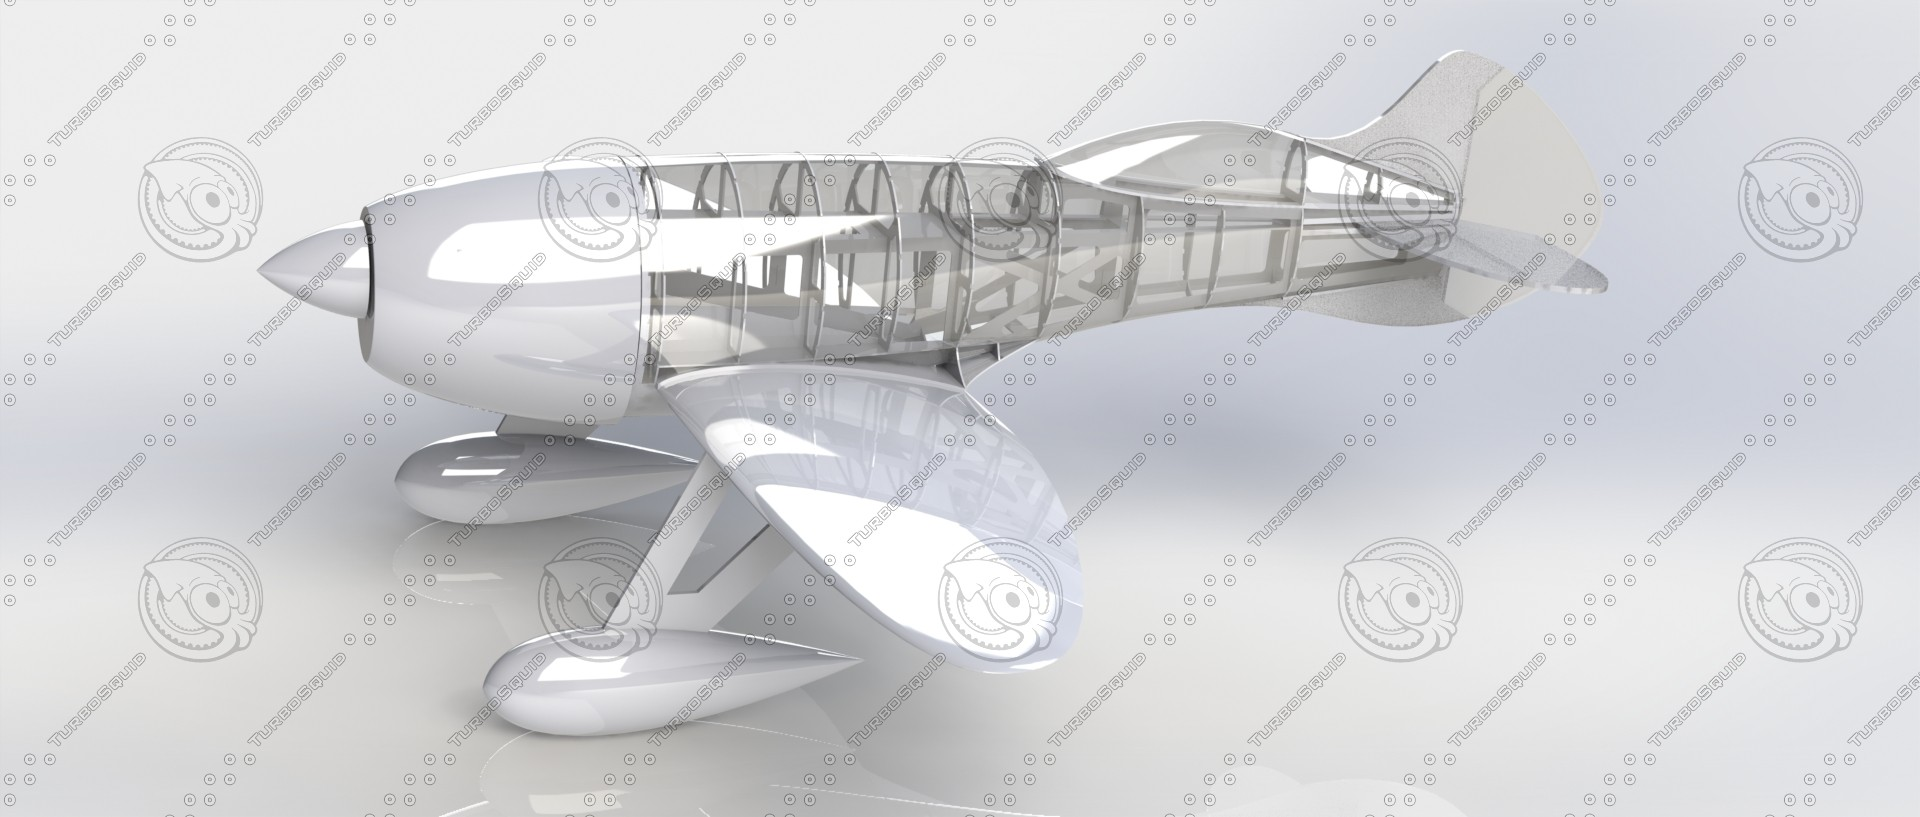 Geebee r3 plan view1.JPG